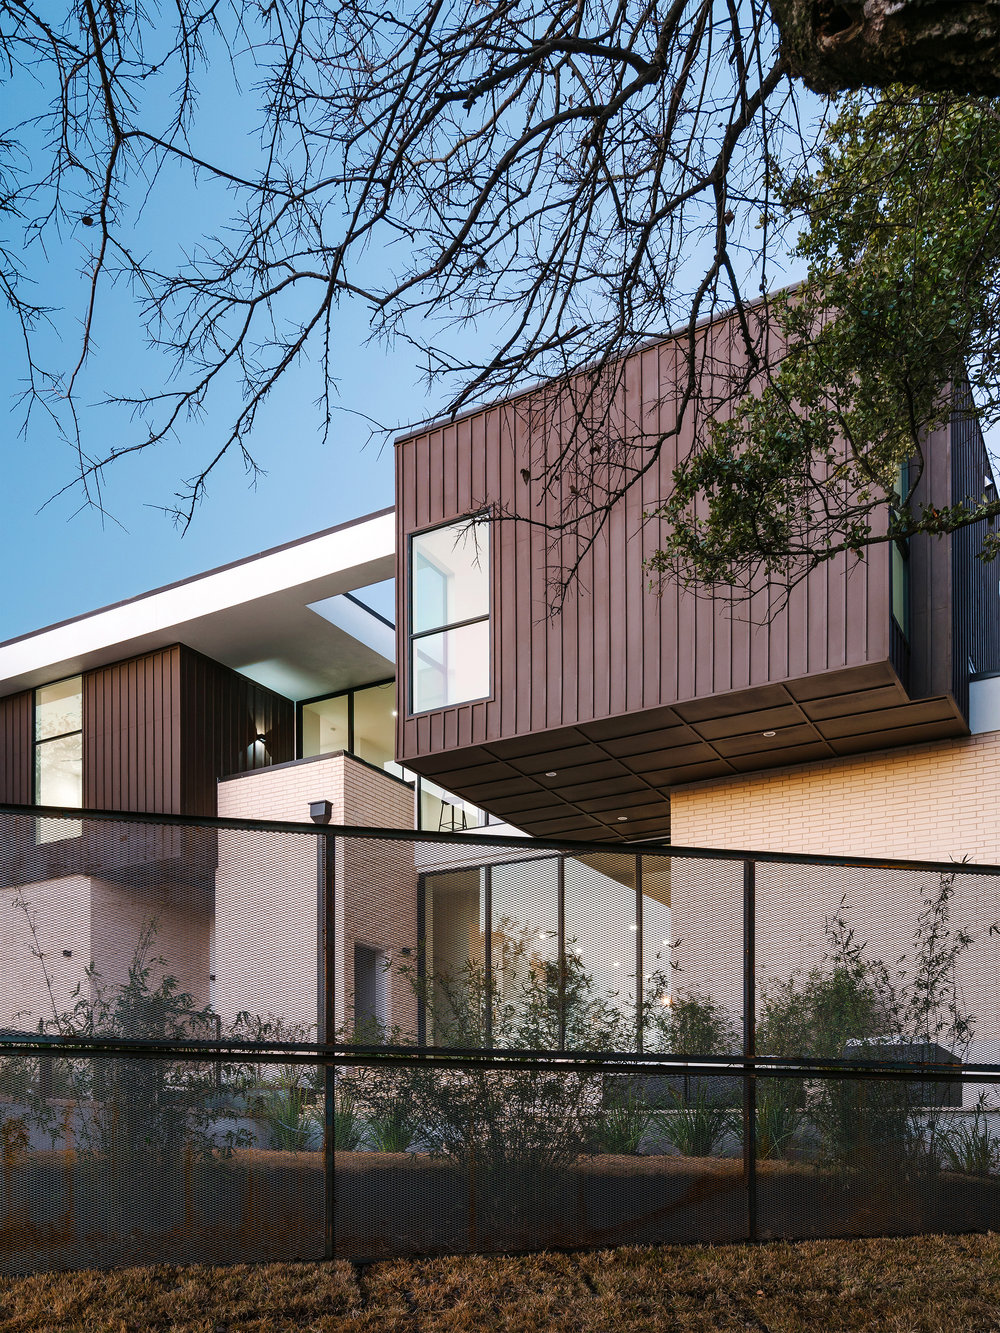 3 Allotted Space House by Matt Fajkus Architecture. Photo by Chase Daniel.jpg